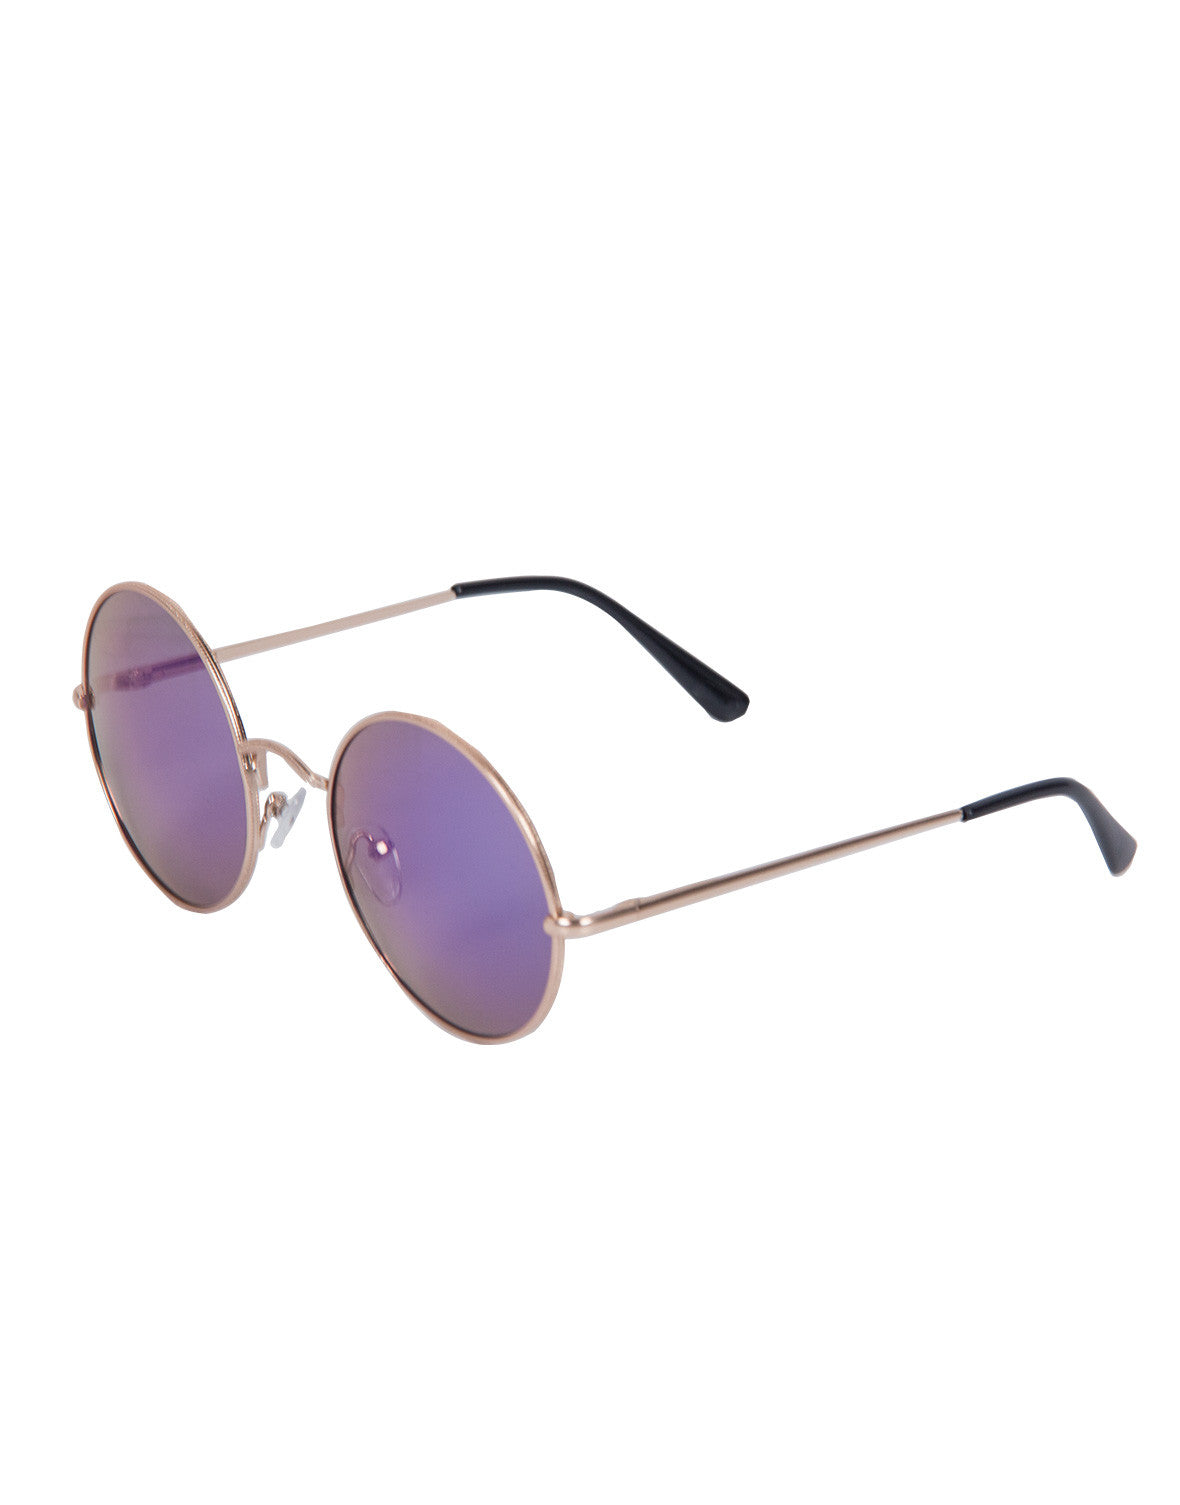 Mirrored Round Sunglasses